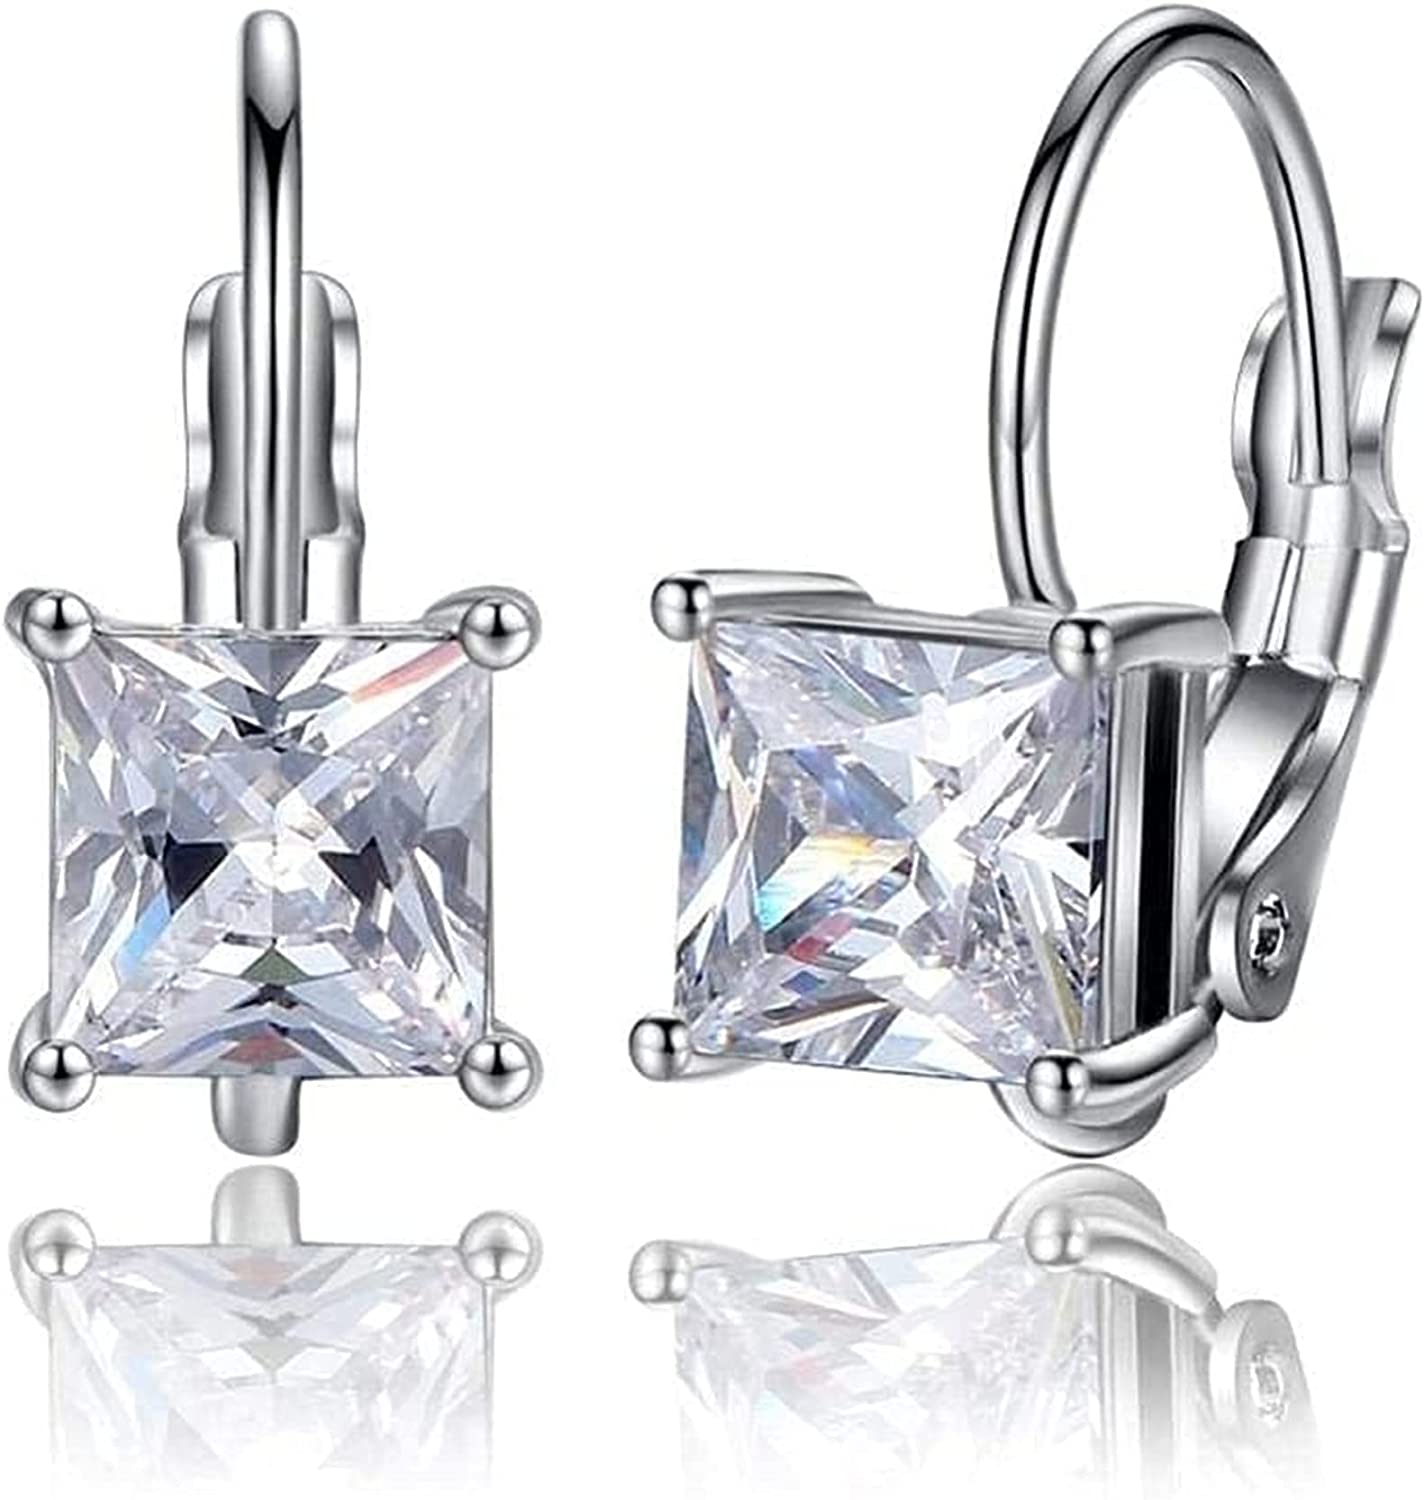 JoHUAZ Exquisite Ladies Earrings Personalized Earrings Imitated Crystal Prismatic Ear Rings Imitated Zircon Ear Clips Colorful Earrings Exquisite/AProduct Code: WW 812 (Color : D) (Color : D)